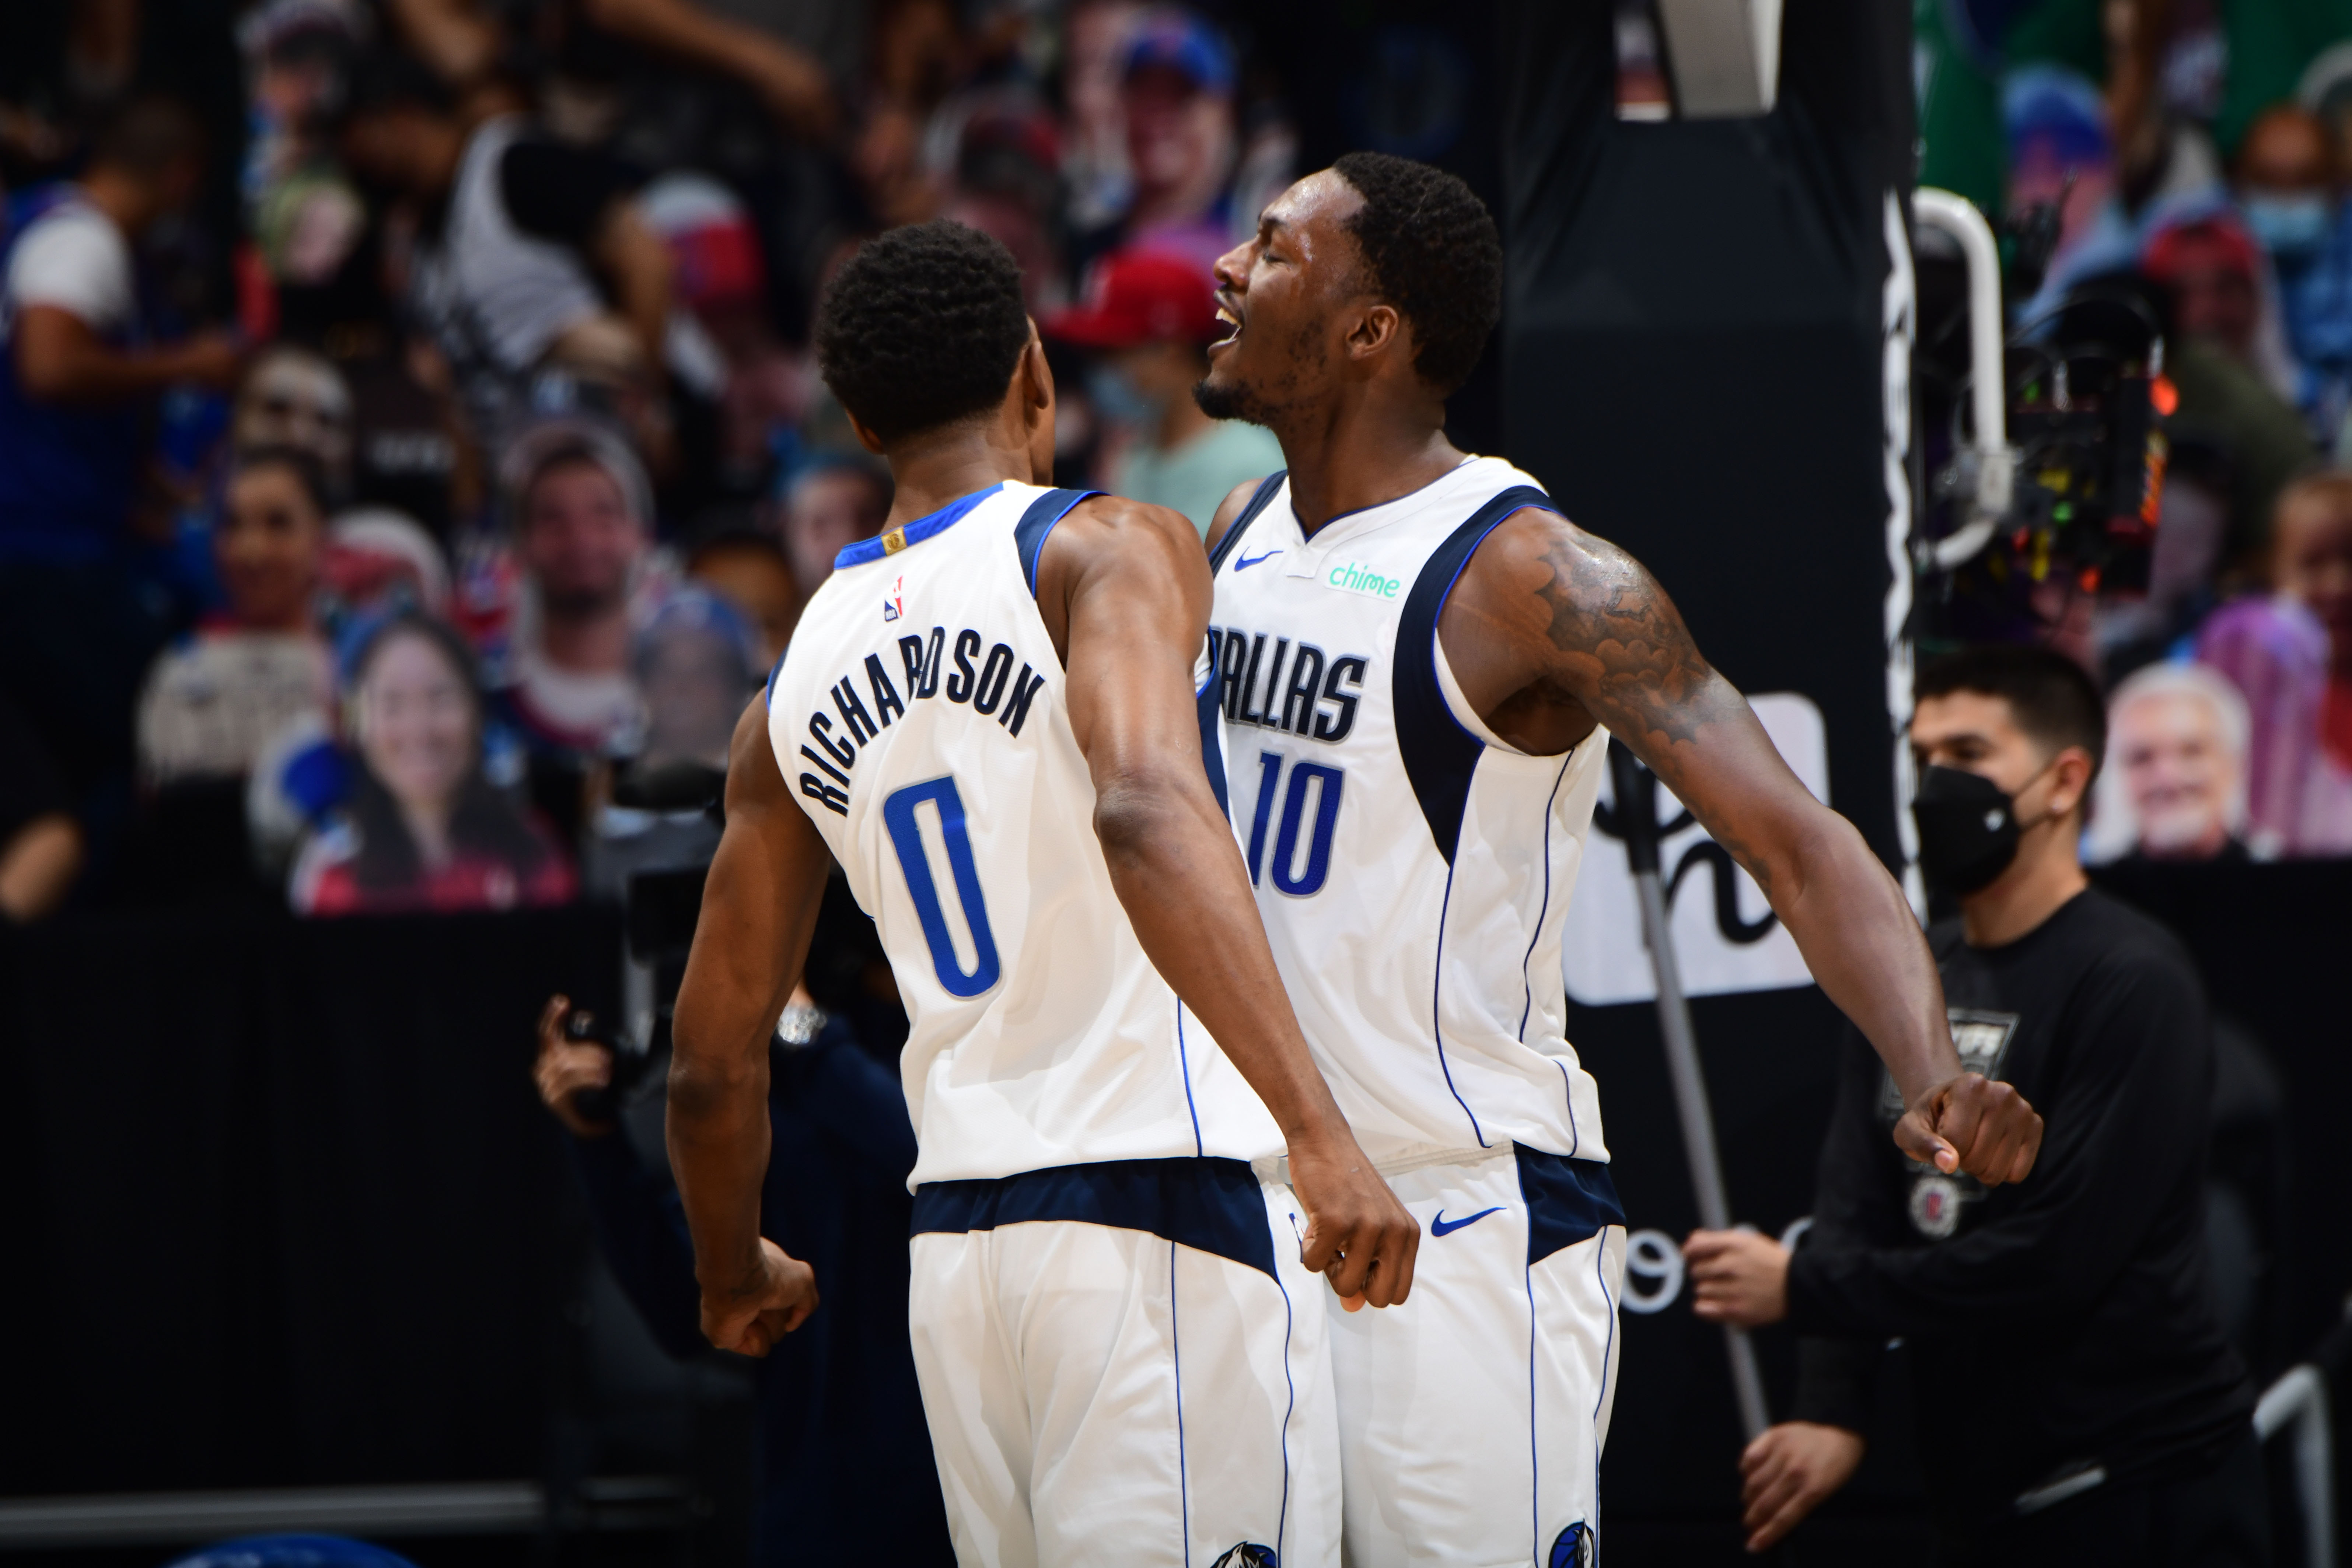 Background:LOS ANGELES, CA - MAY 25: Josh Richardson #0 and Dorian Finney-Smith #10 of the Dallas Mavericks celebrate during the game against the LA Clippers during Round 1, Game 2 of the 2021 NBA Playoffs on May 25, 2021 at STAPLES Center in Los Angeles, California.